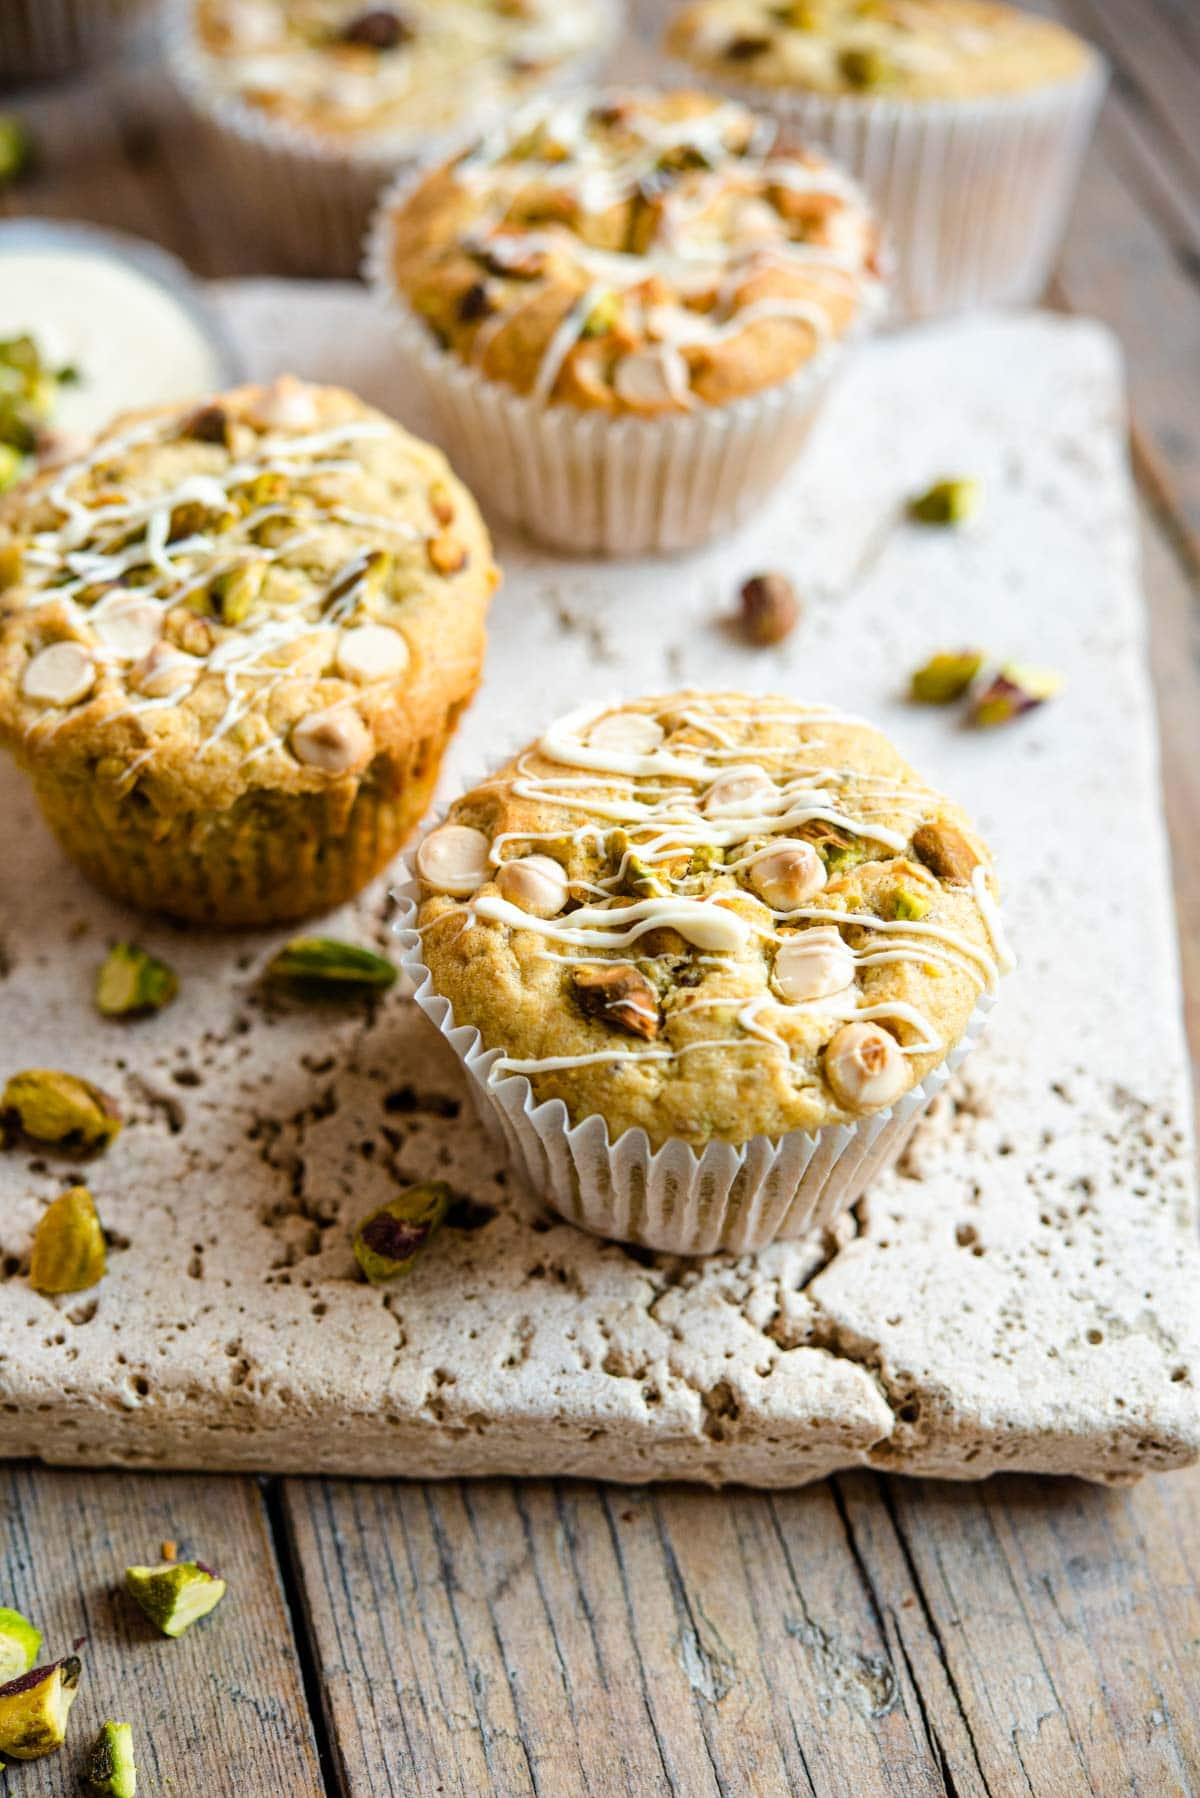 A close up of a pistachio muffin topped with white chocolate chips